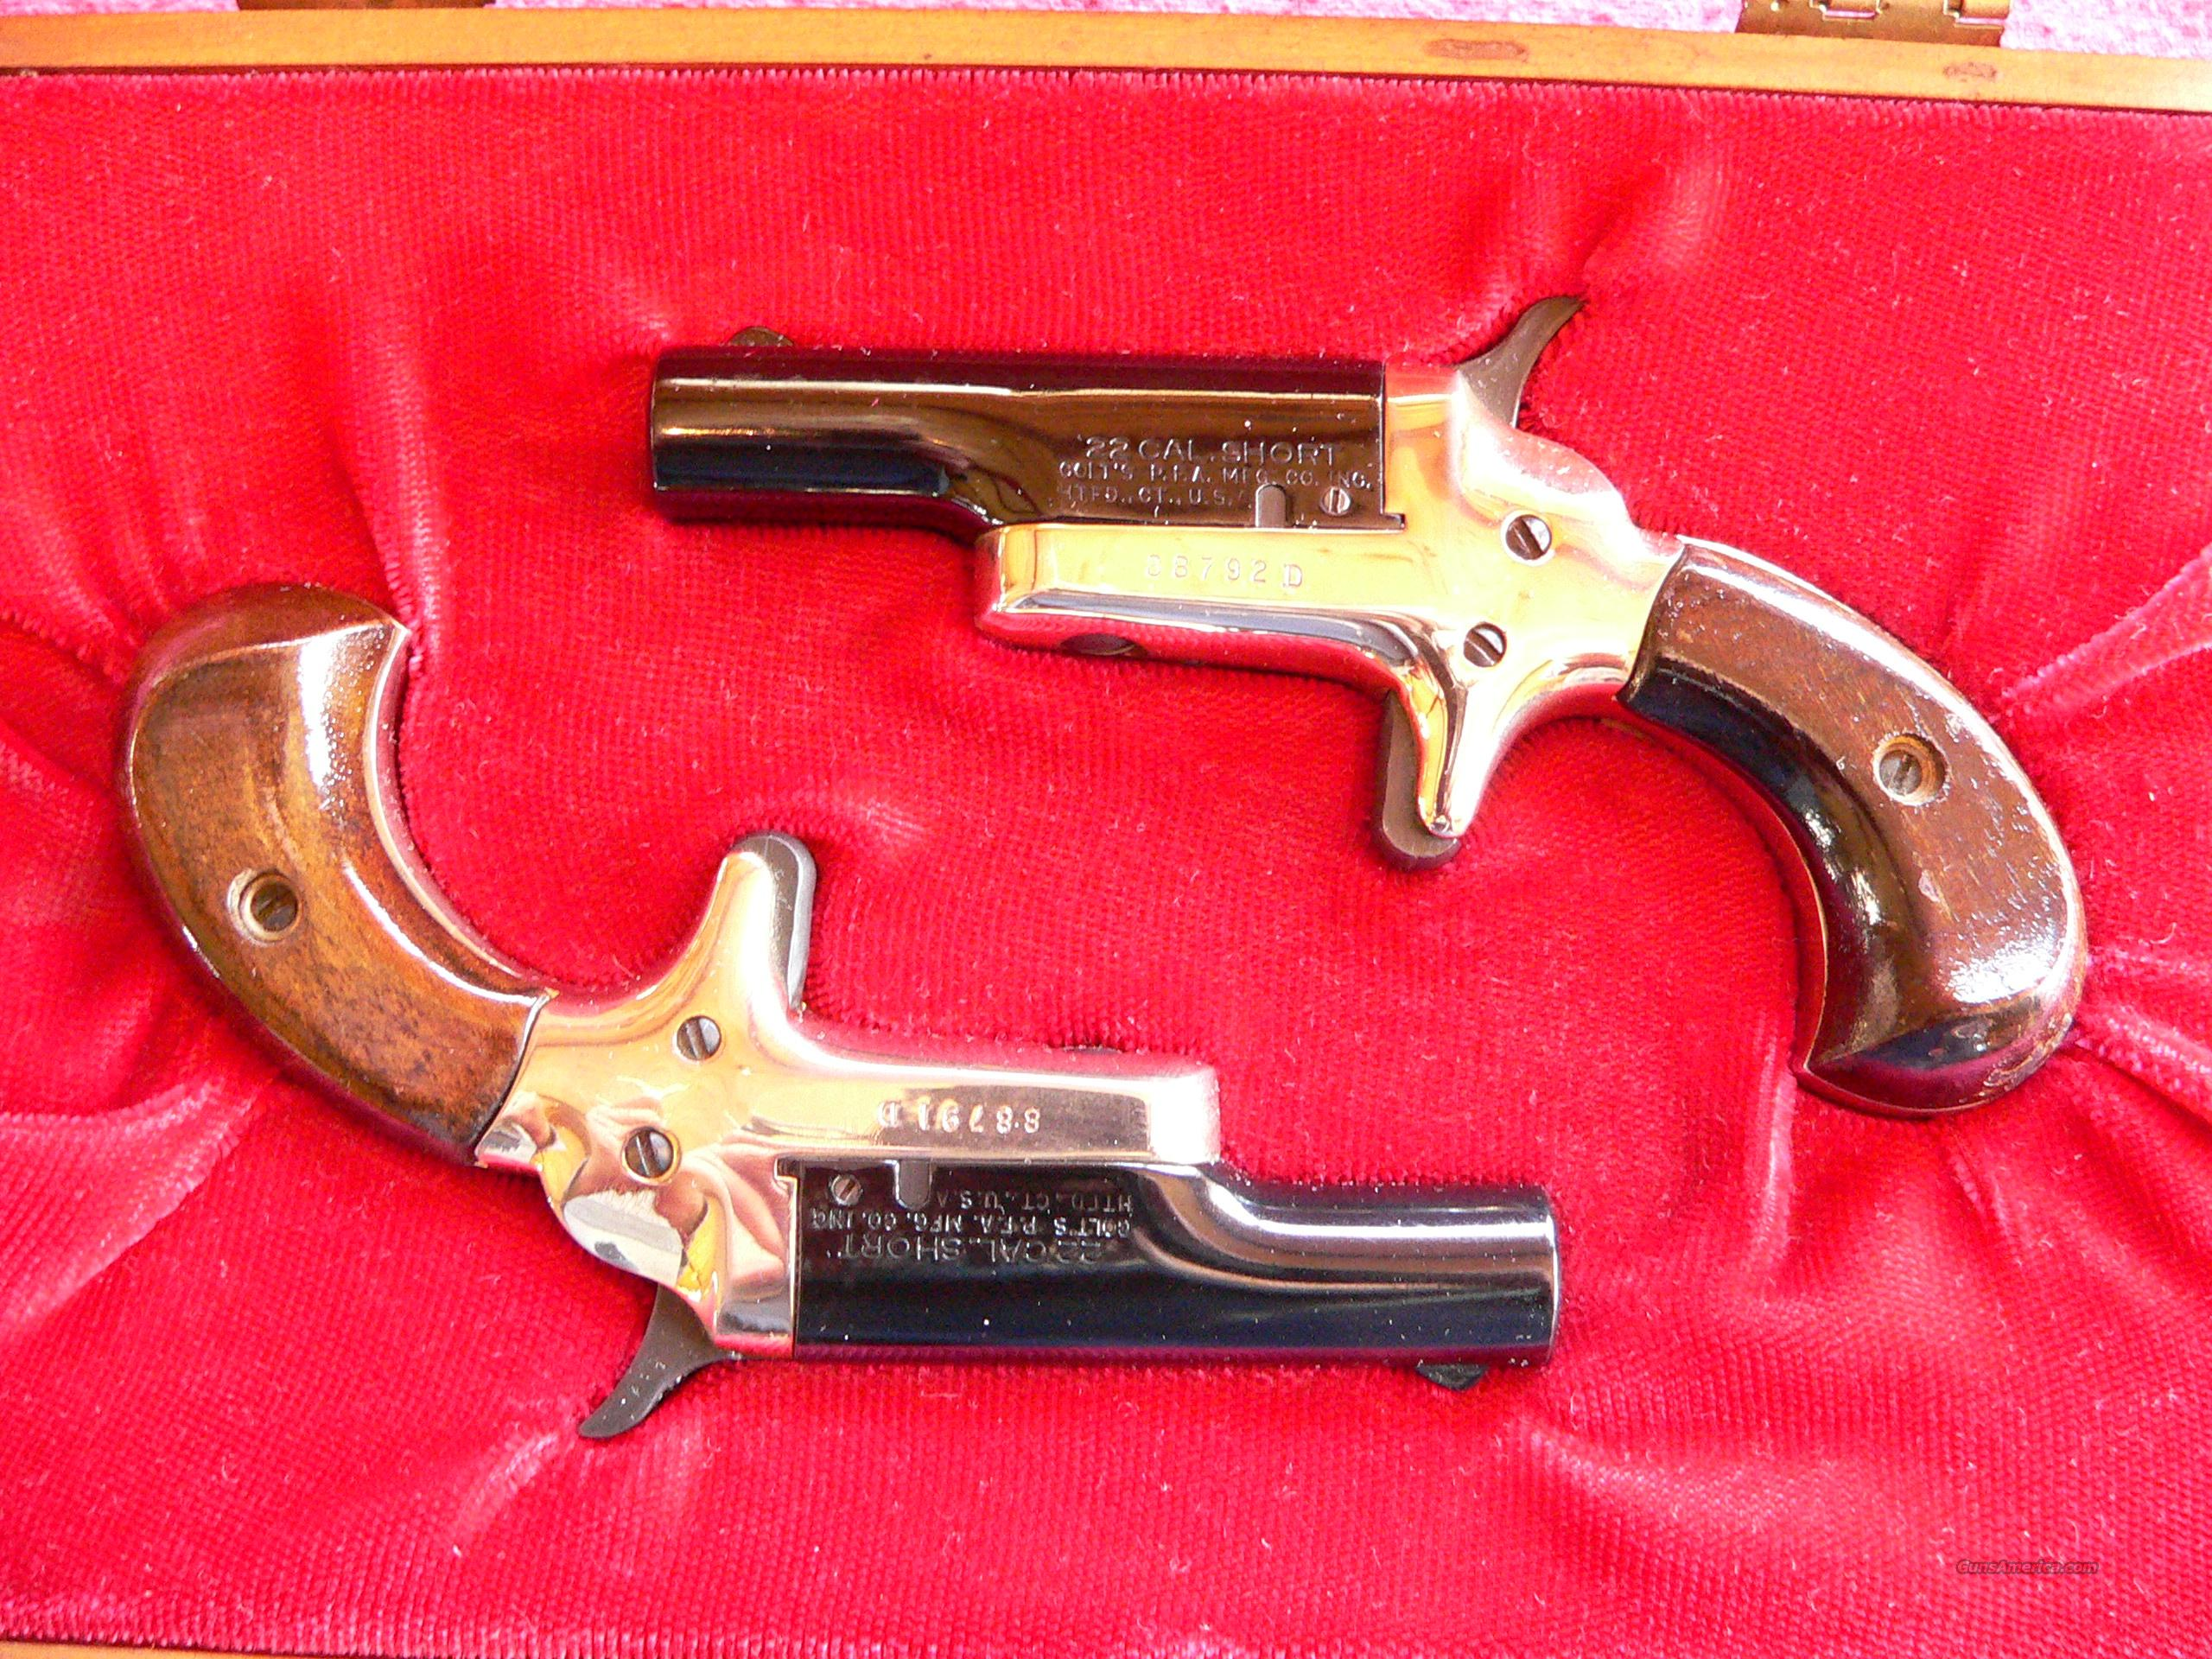 Colt Derringer Matched Set cal. 22 Short (2-1/2-in. barrel) Pistols  Guns > Pistols > Colt Commemorative Pistols